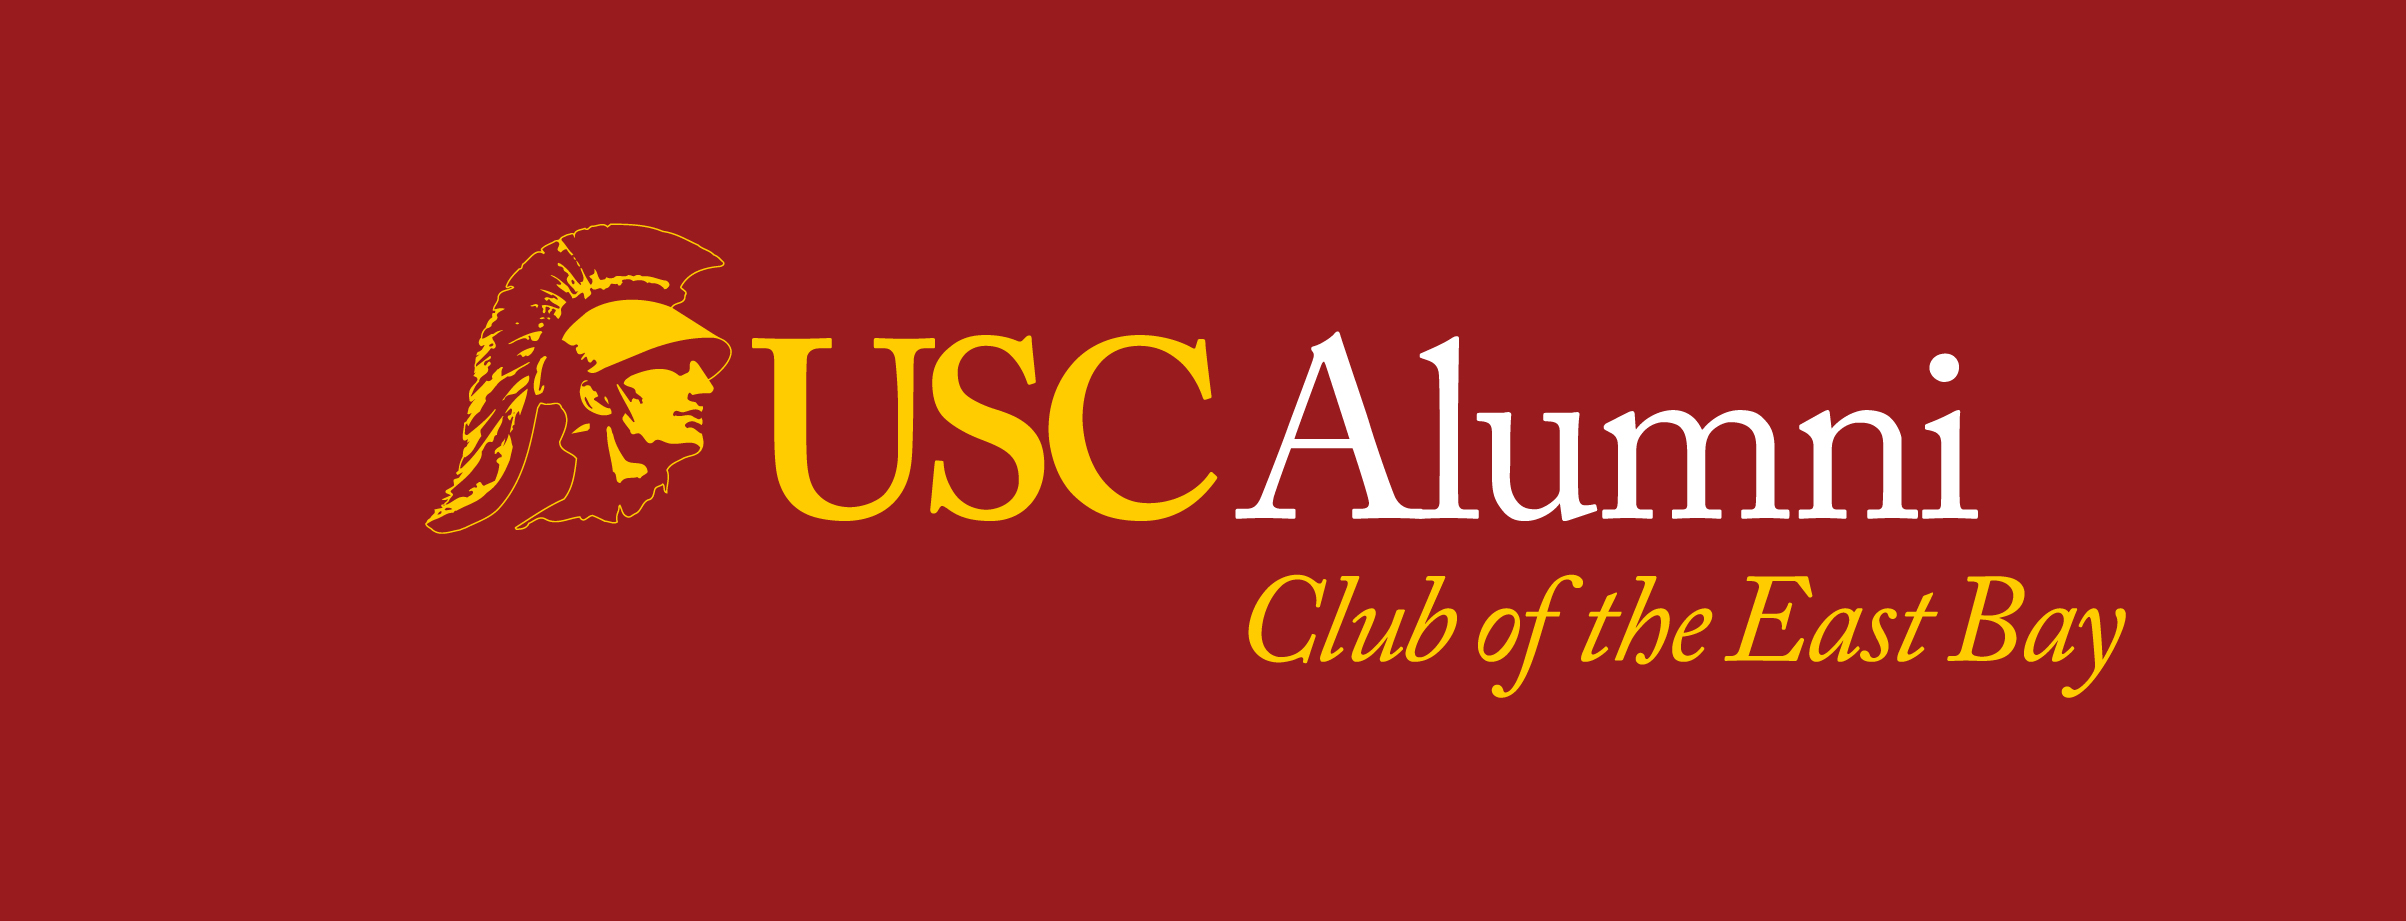 Usc dating policy